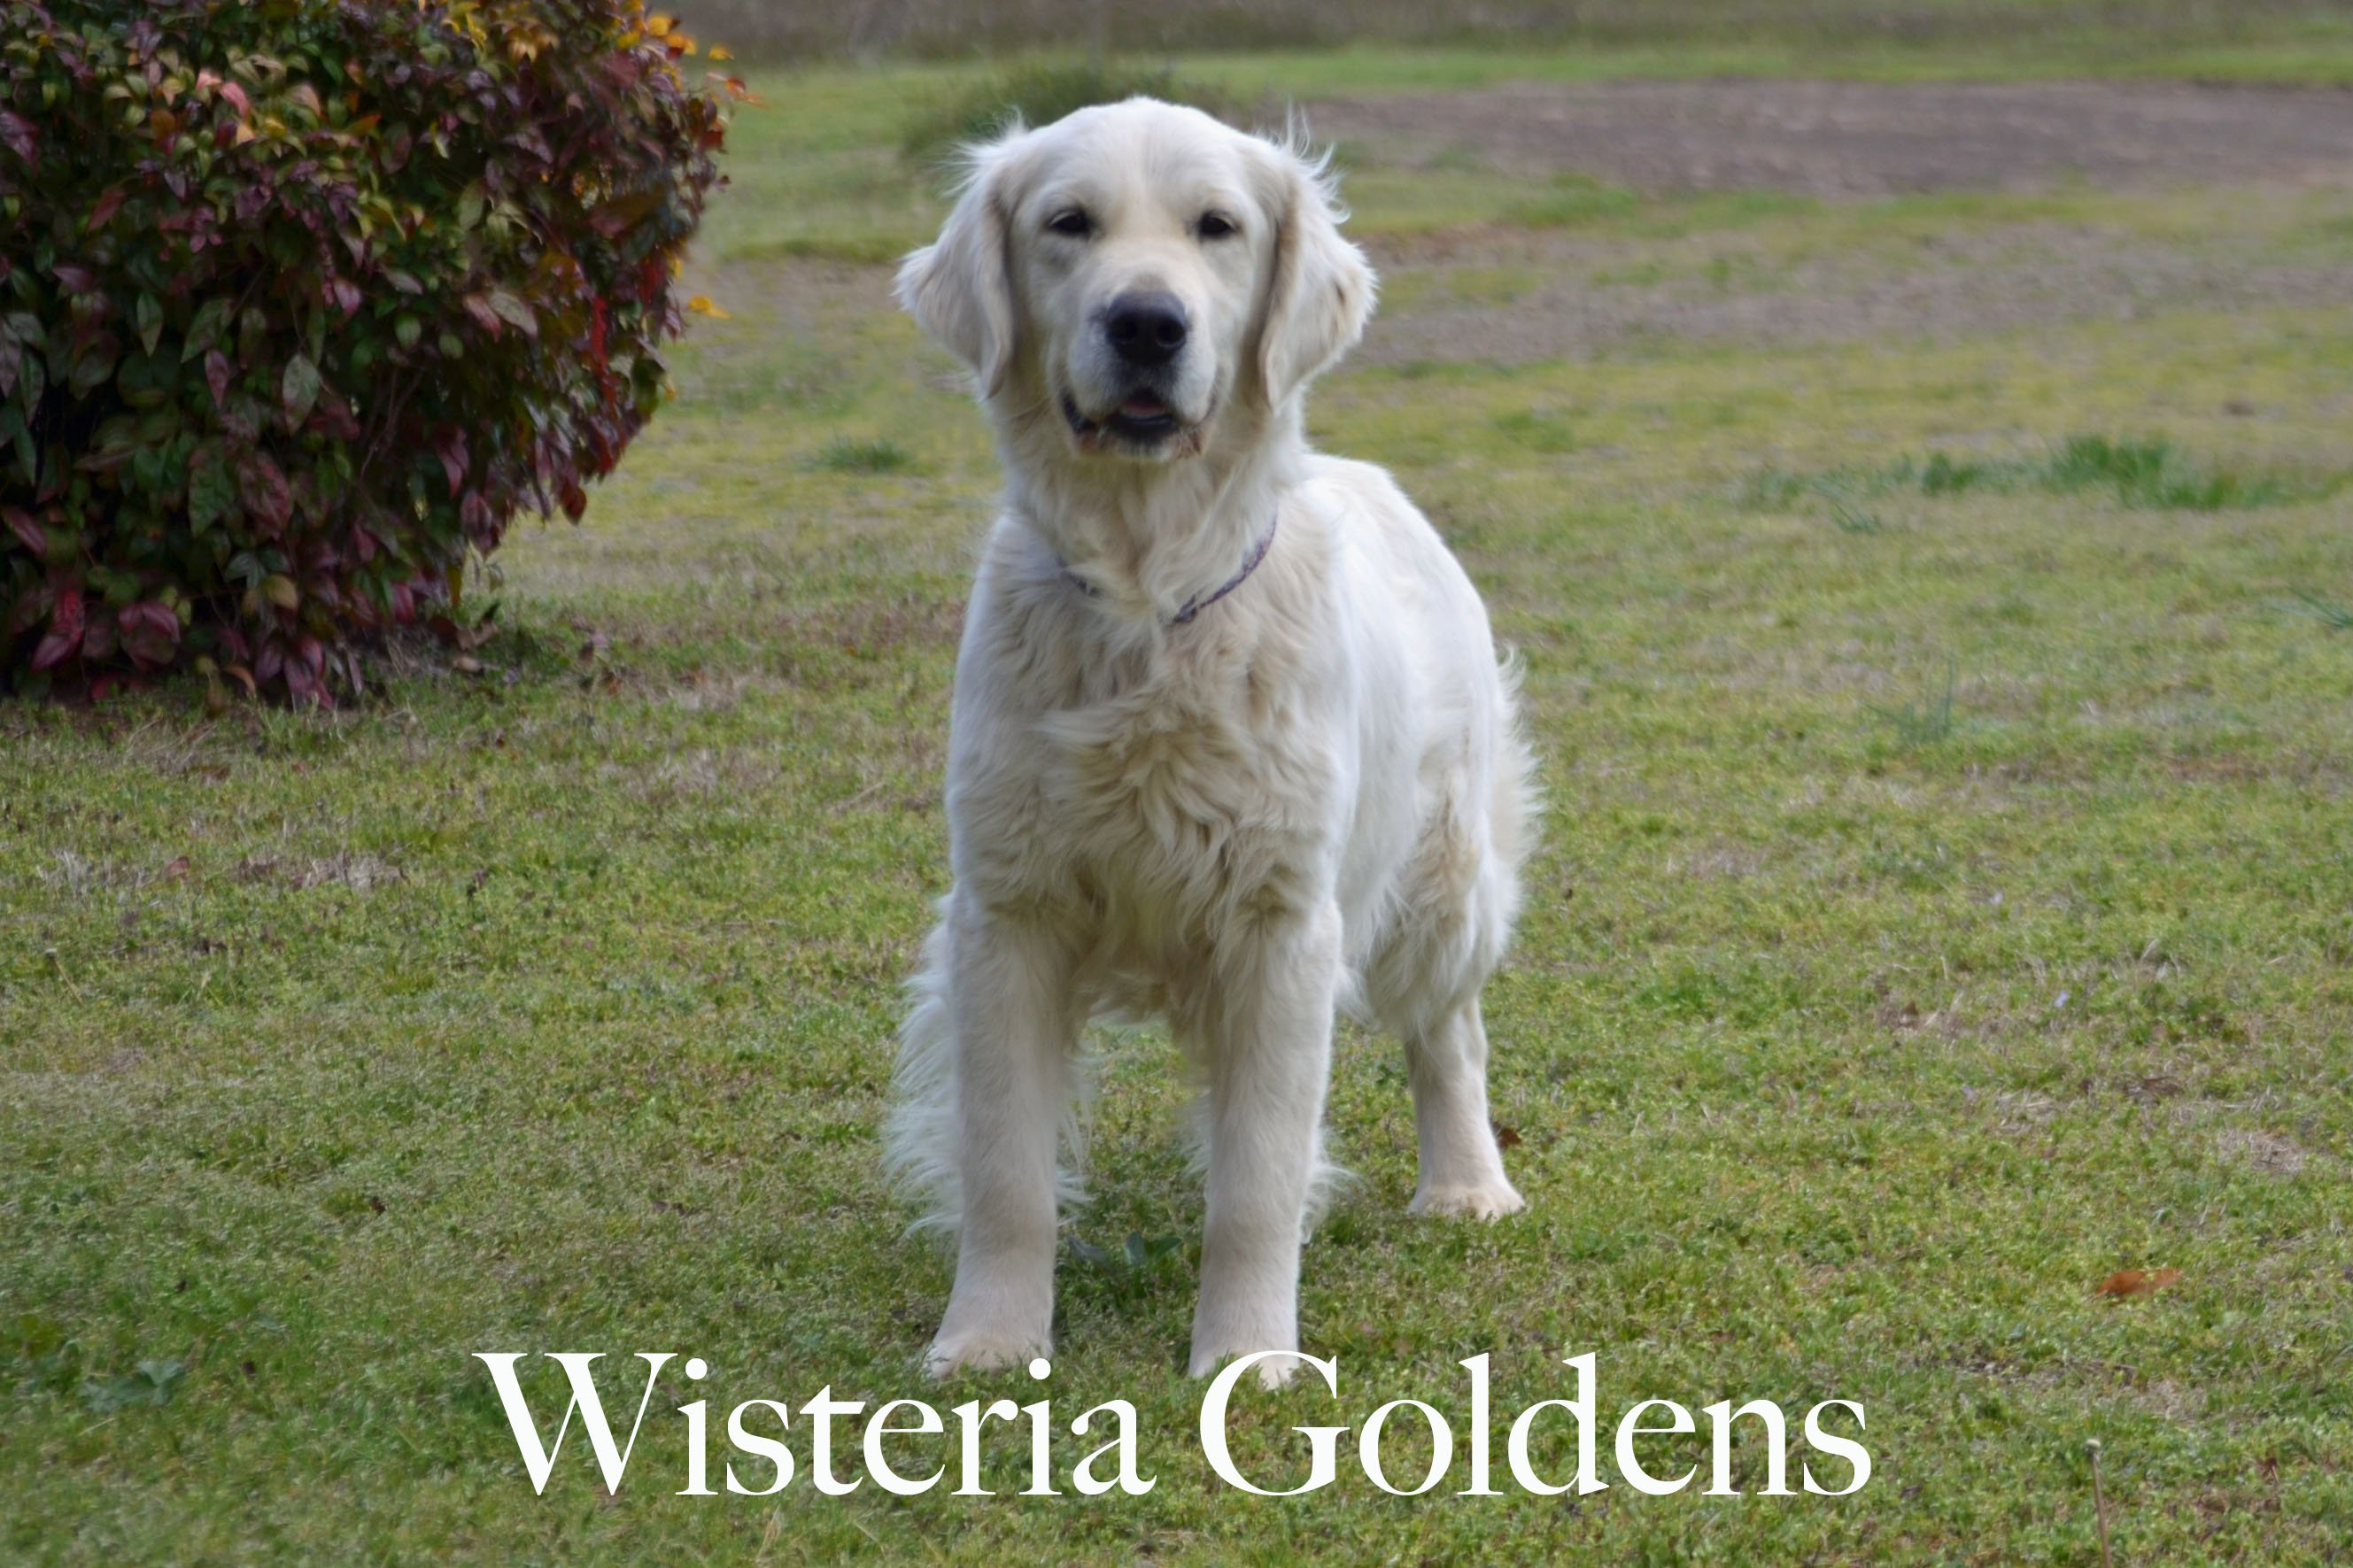 Harmony-1-harmony-full-english-creme-goldens-retrievers-wisteria-goldens